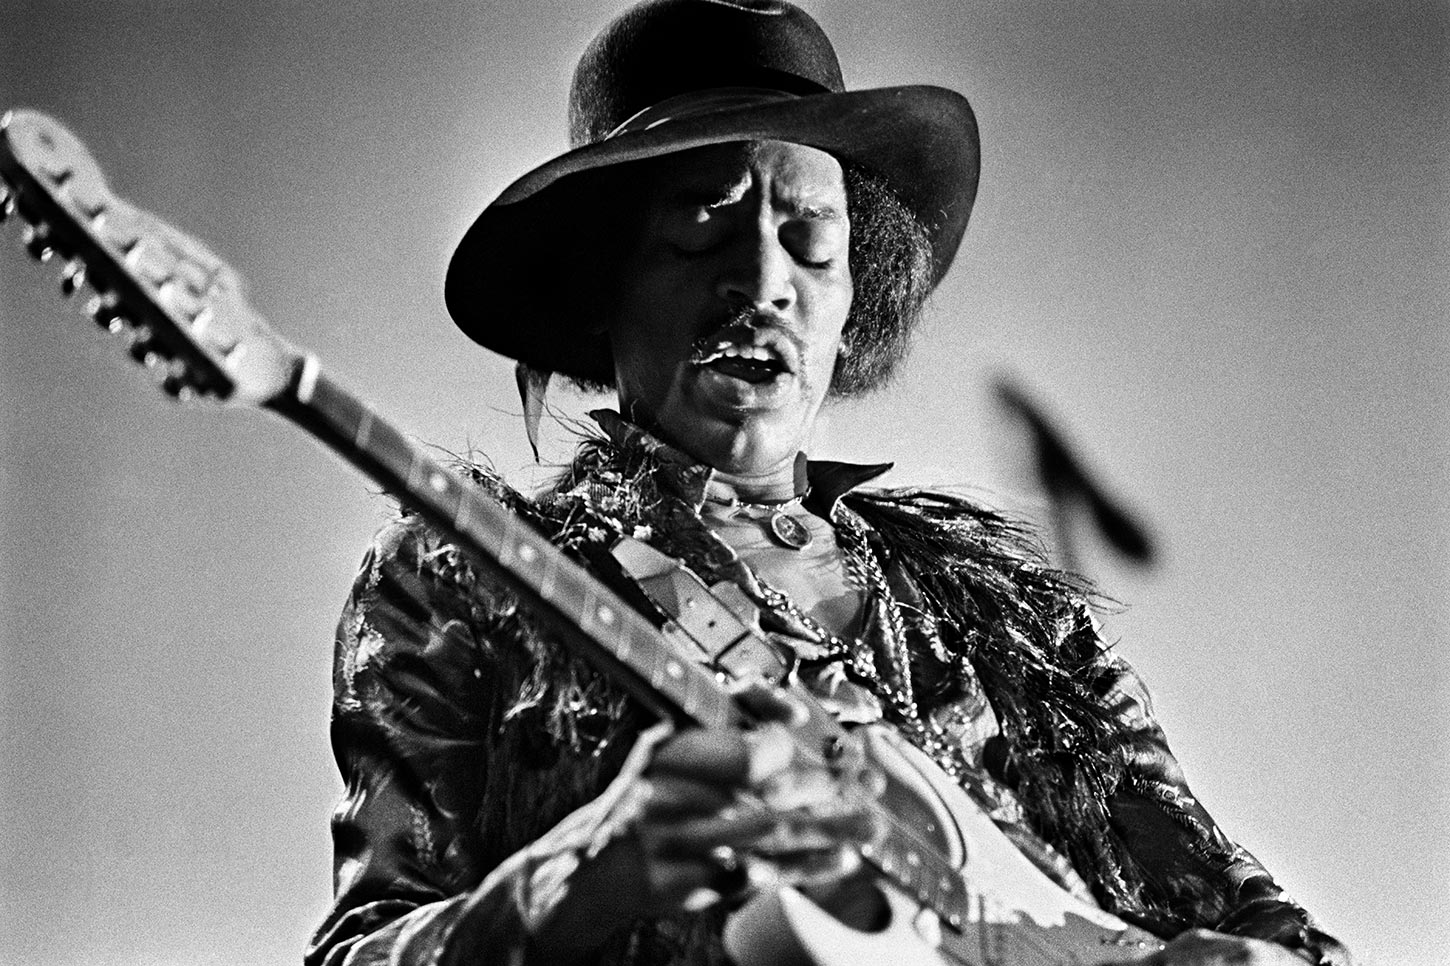 Jimi Hendrix. Fillmore East, New York City. 1968.